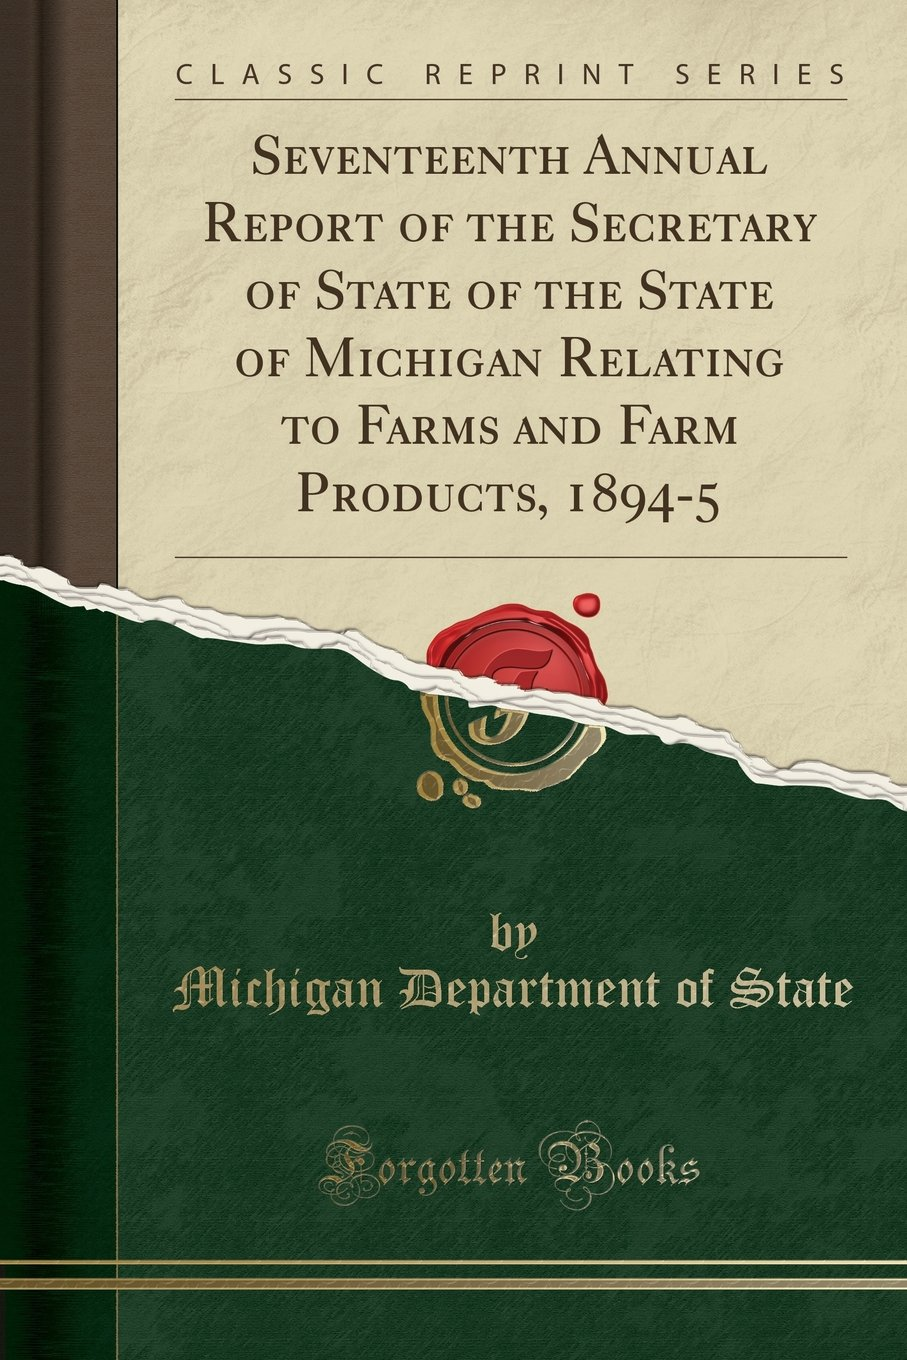 Seventeenth Annual Report of the Secretary of State of the State of Michigan Relating to Farms and Farm Products, 1894-5 (Classic Reprint) ebook